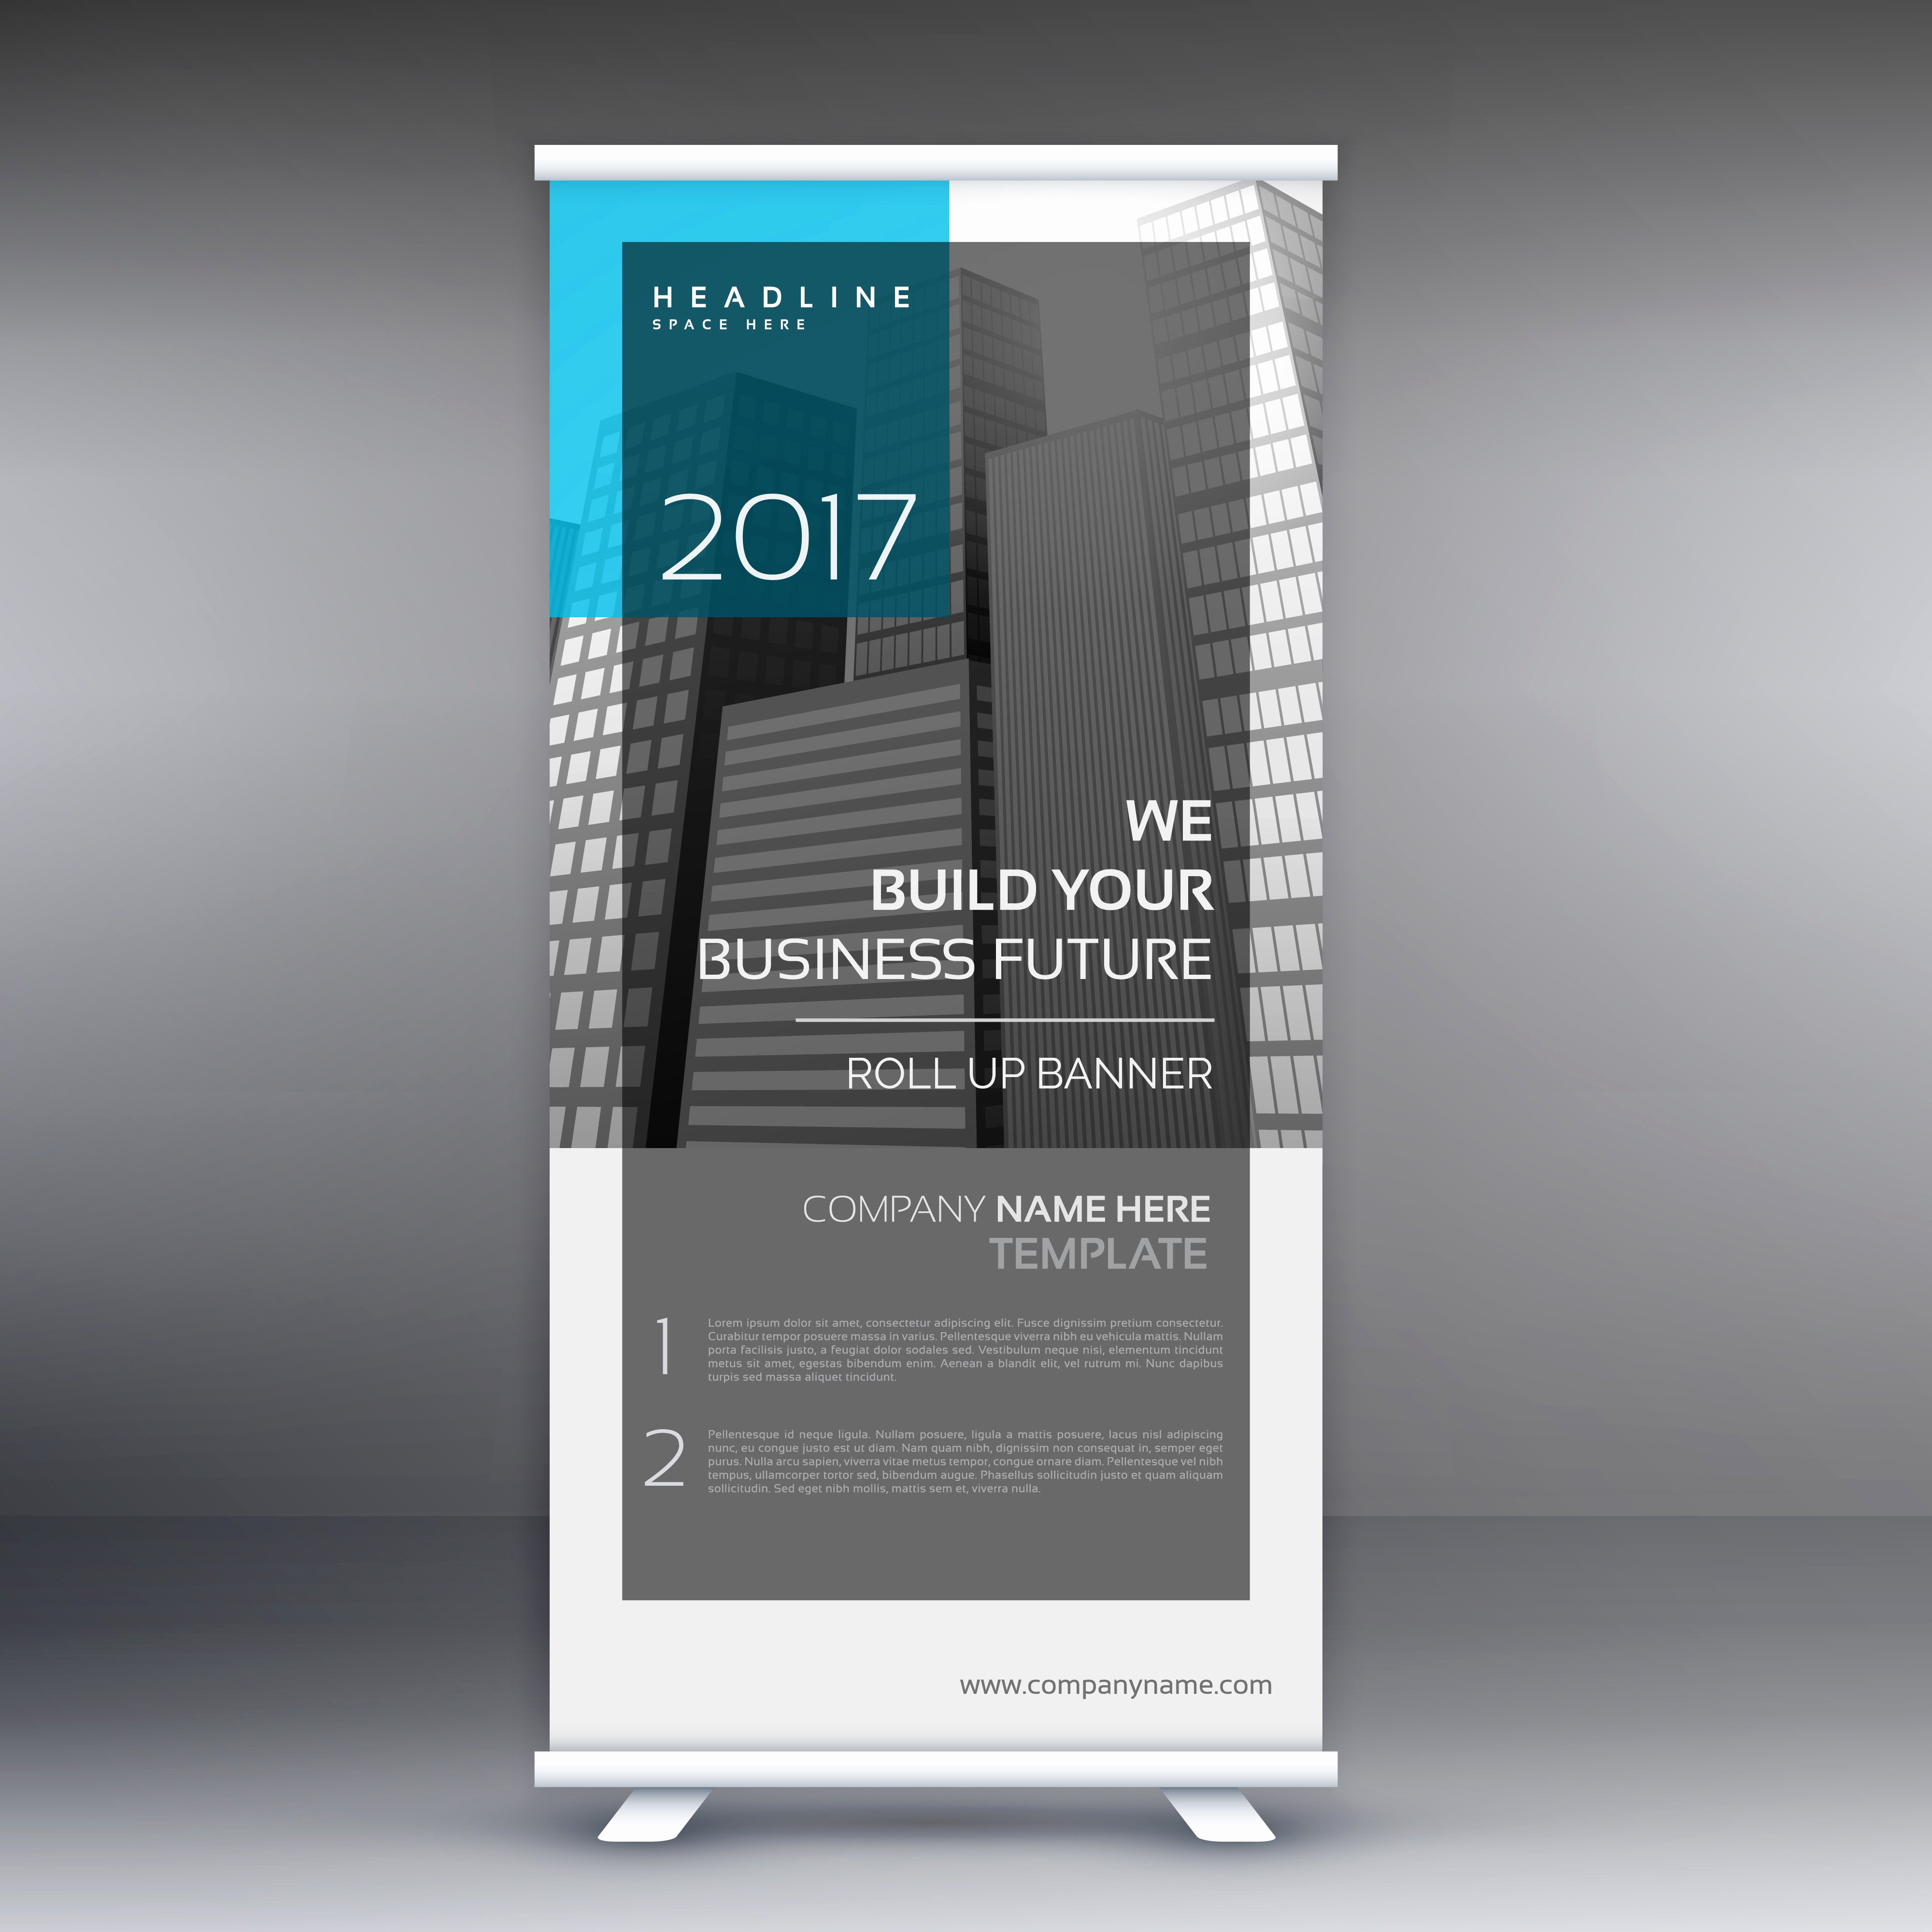 Business Roll Up Banner Presentation Template Download